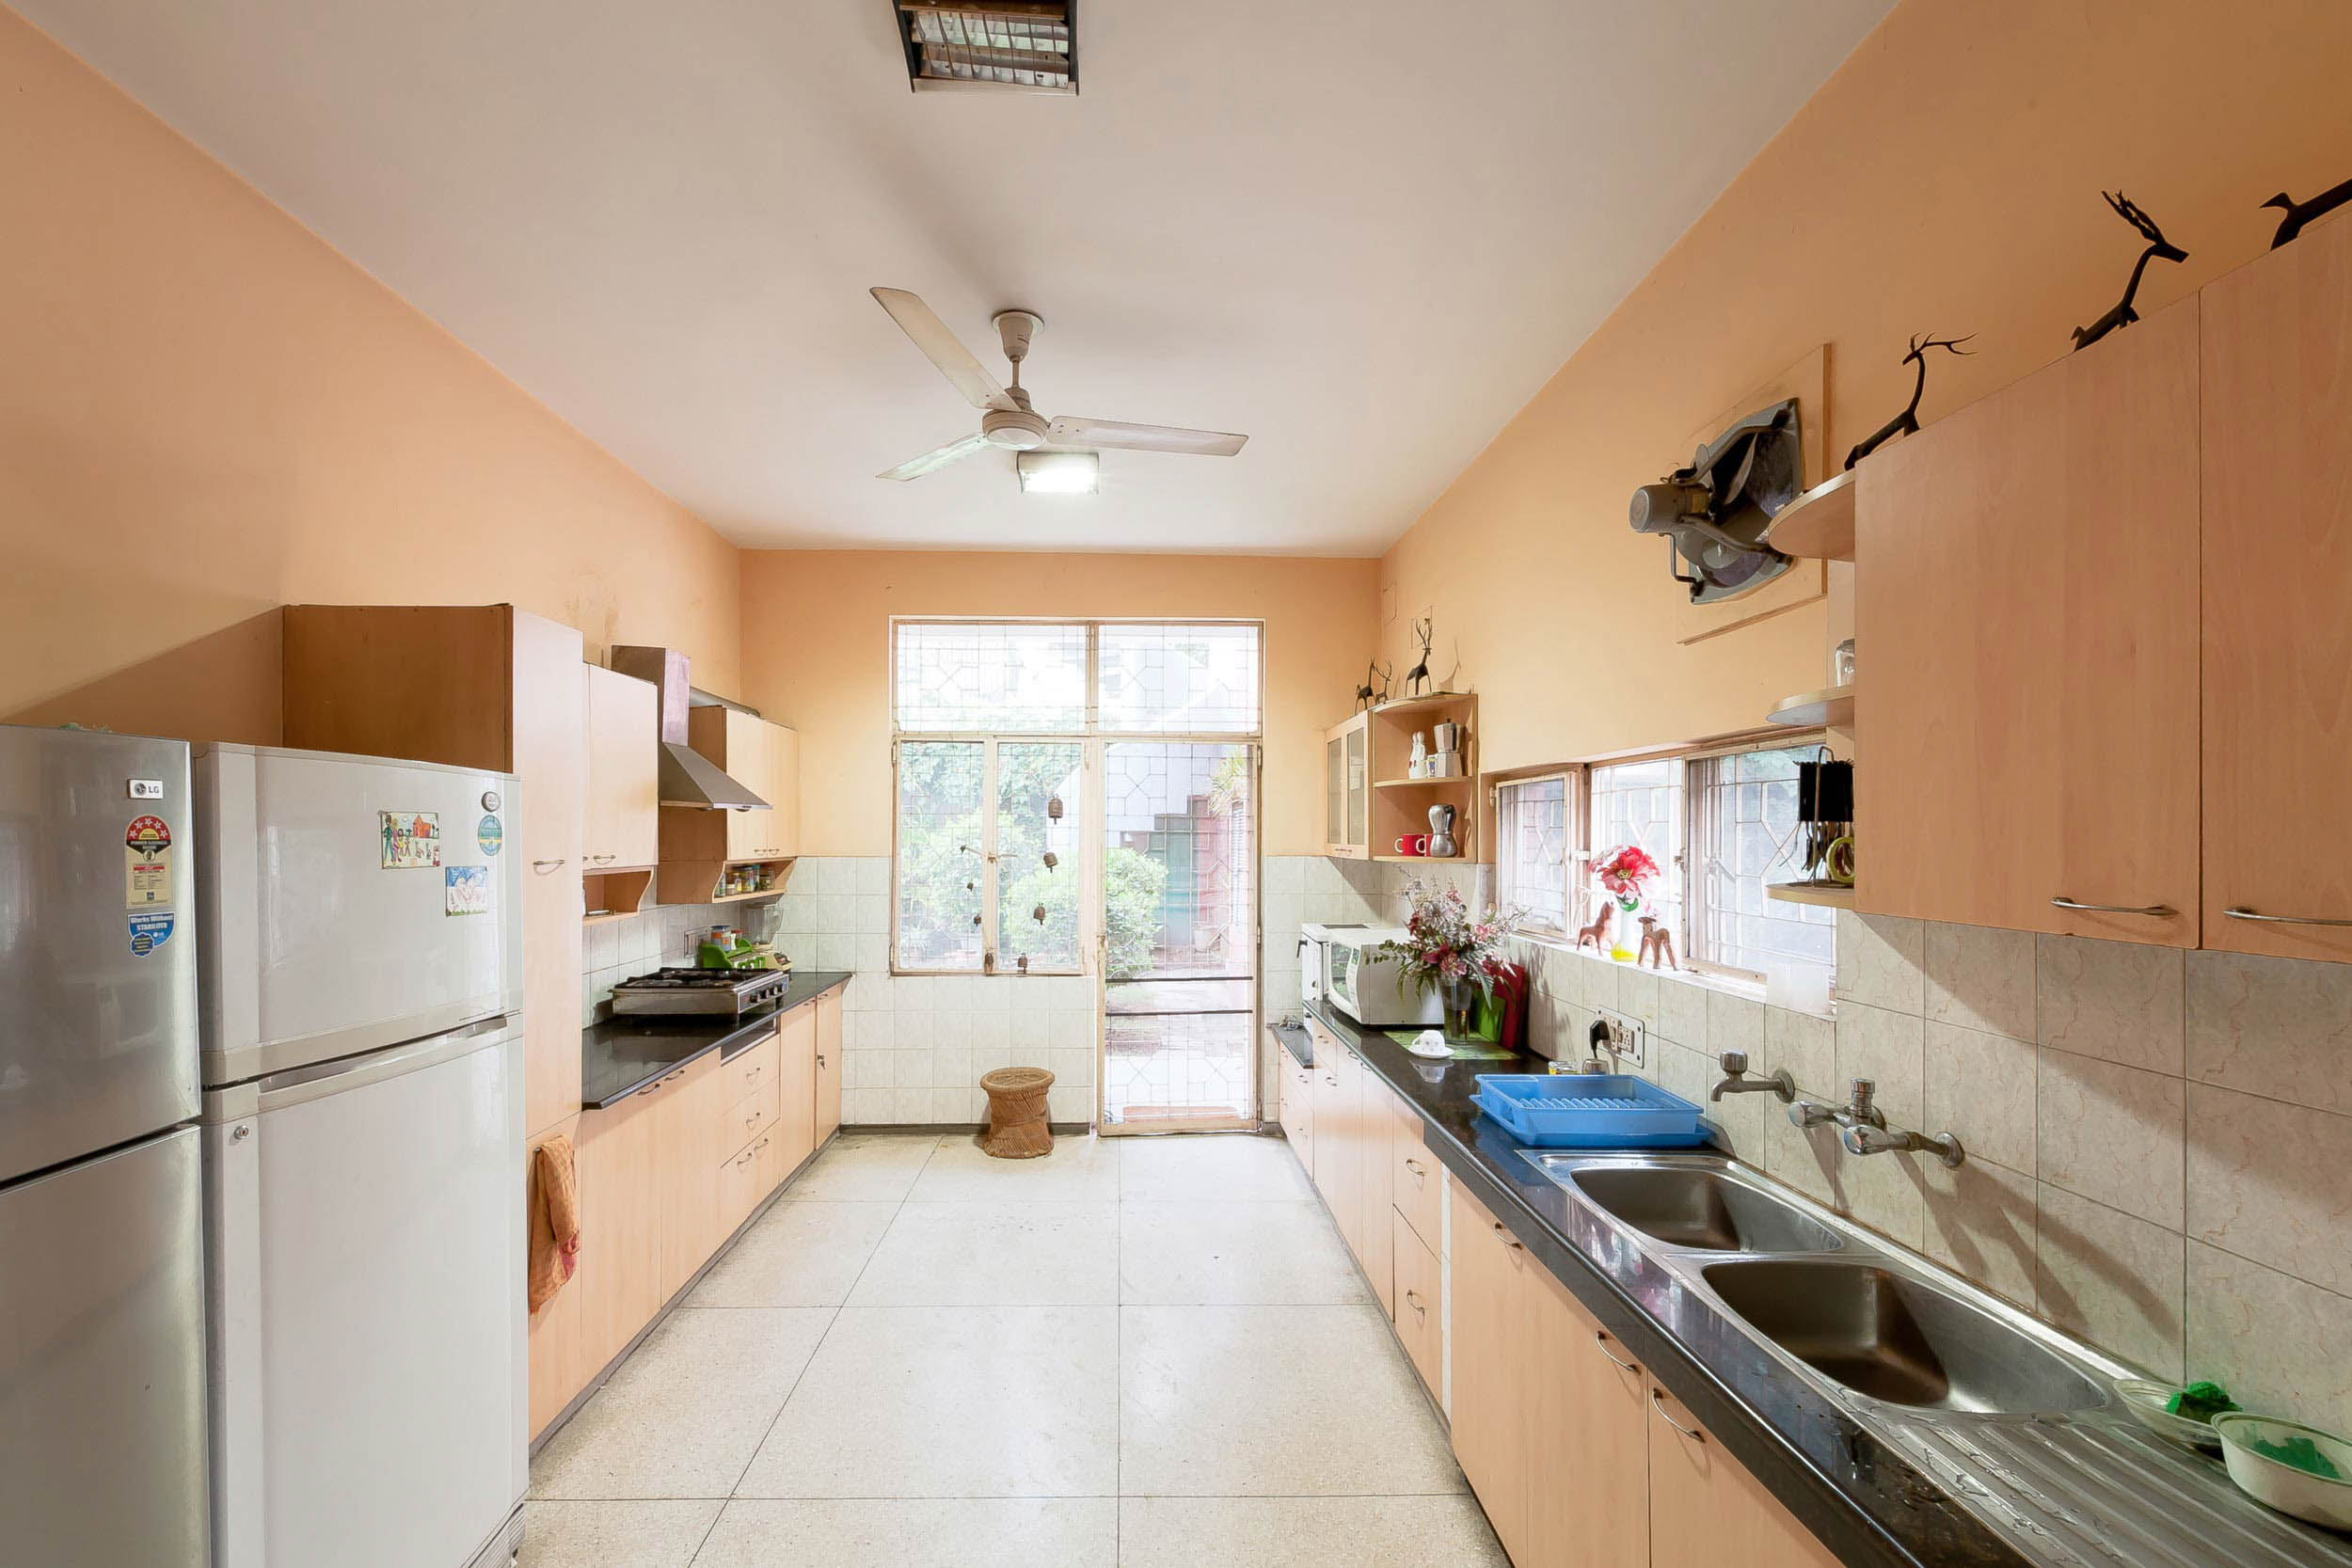 FUW_the-indian-middleclass-kitchen_06-grewal.jpg